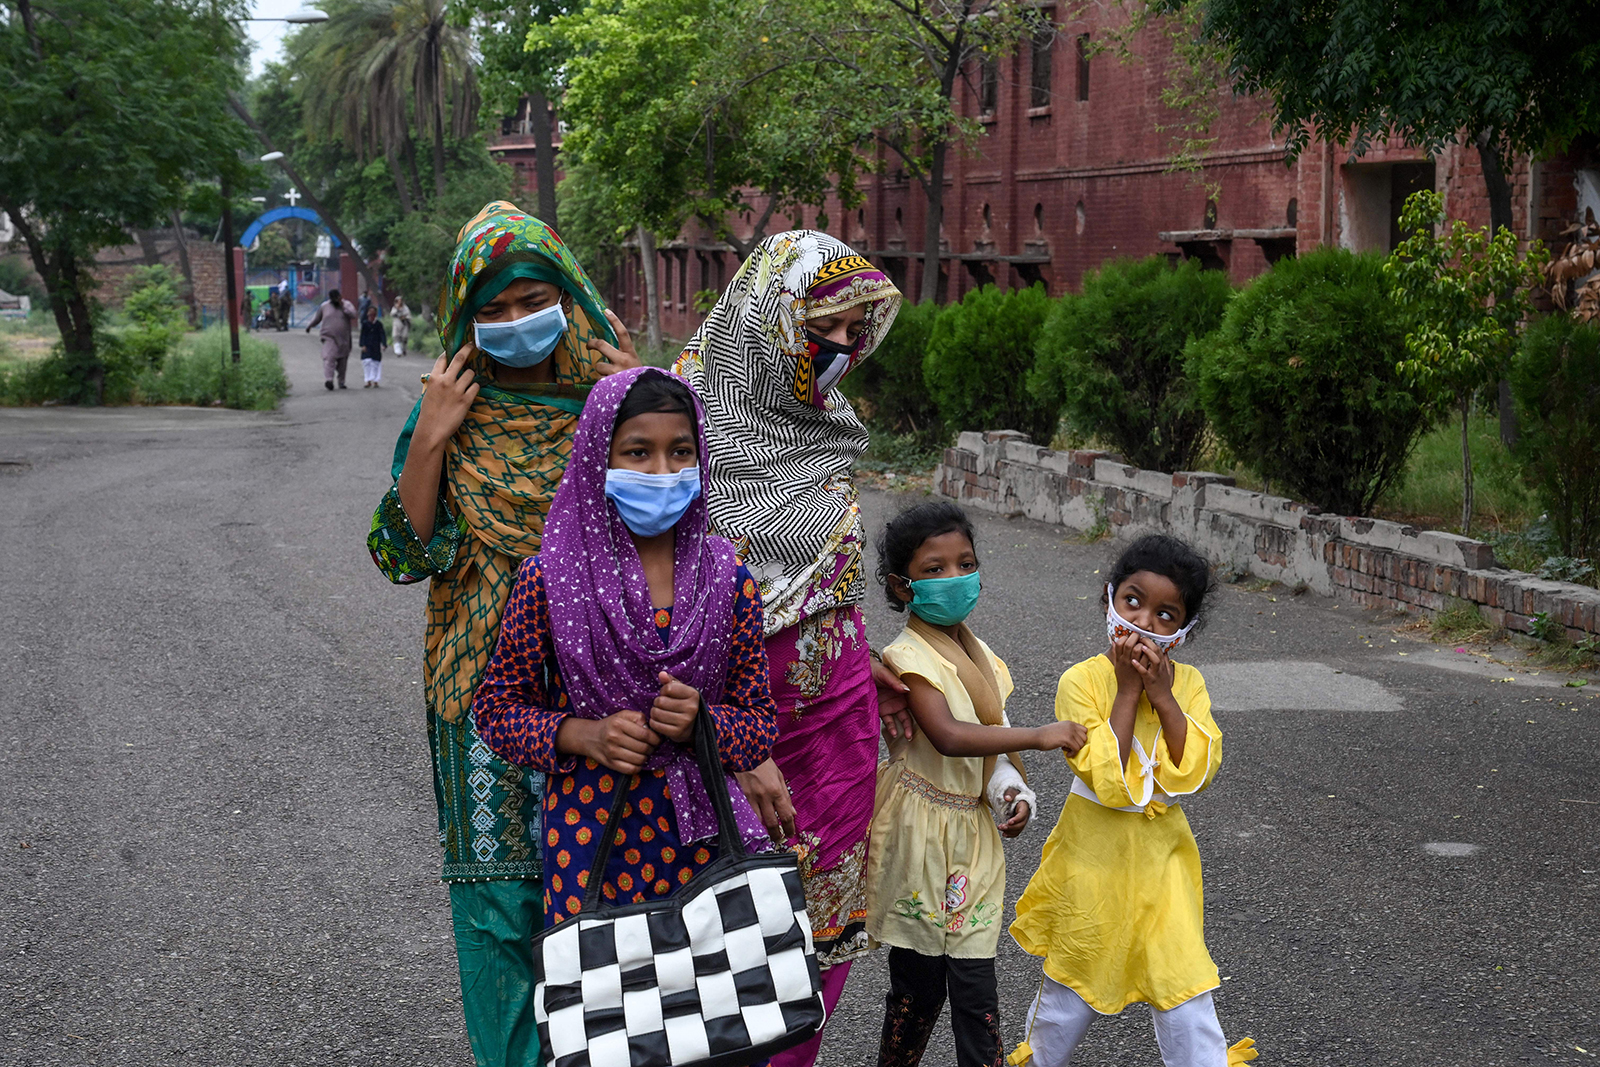 A Catholic family wearing face masks arrives to attend Sunday prayers at the Mary Immaculate Church in Lahore, Pakistan on June 7.